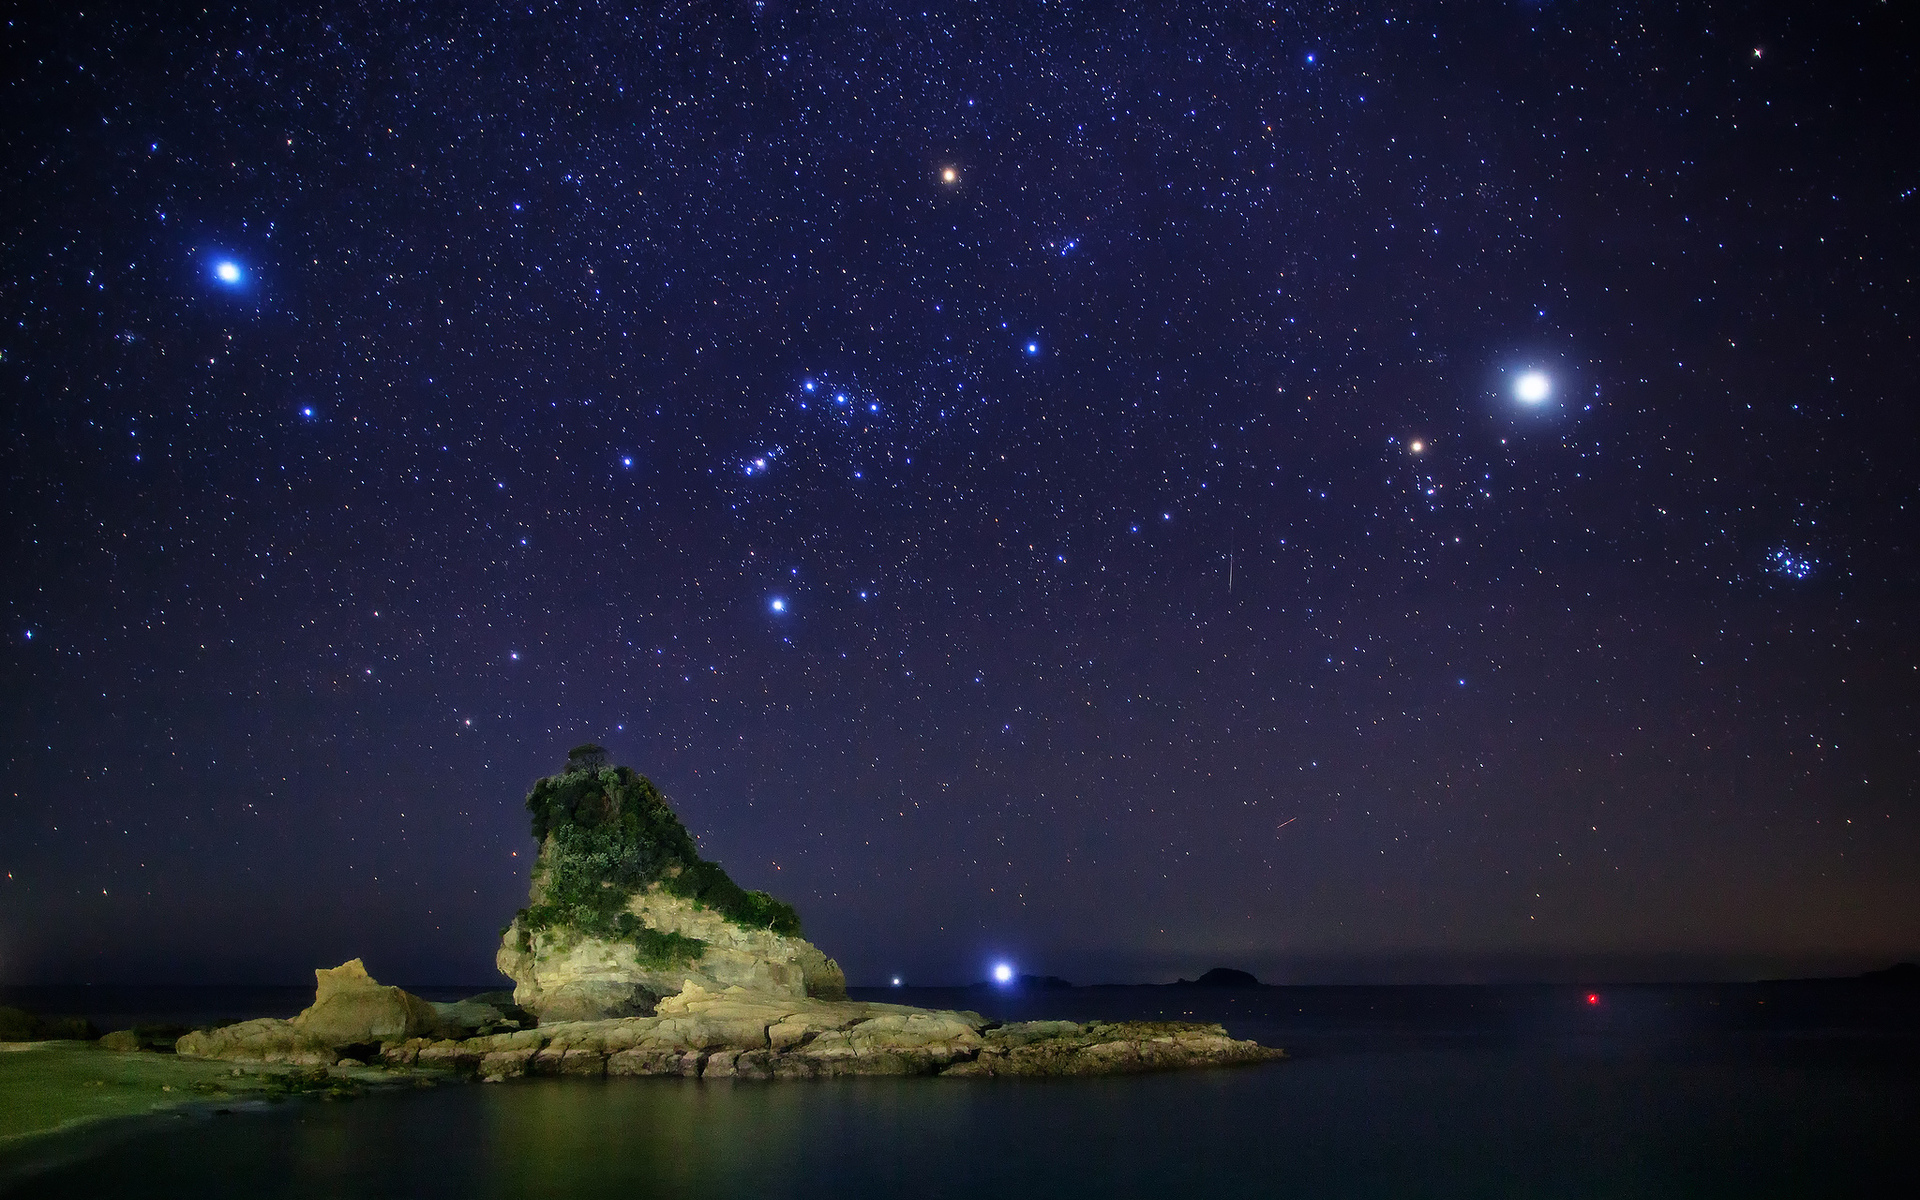 starry night wallpaper iphone search